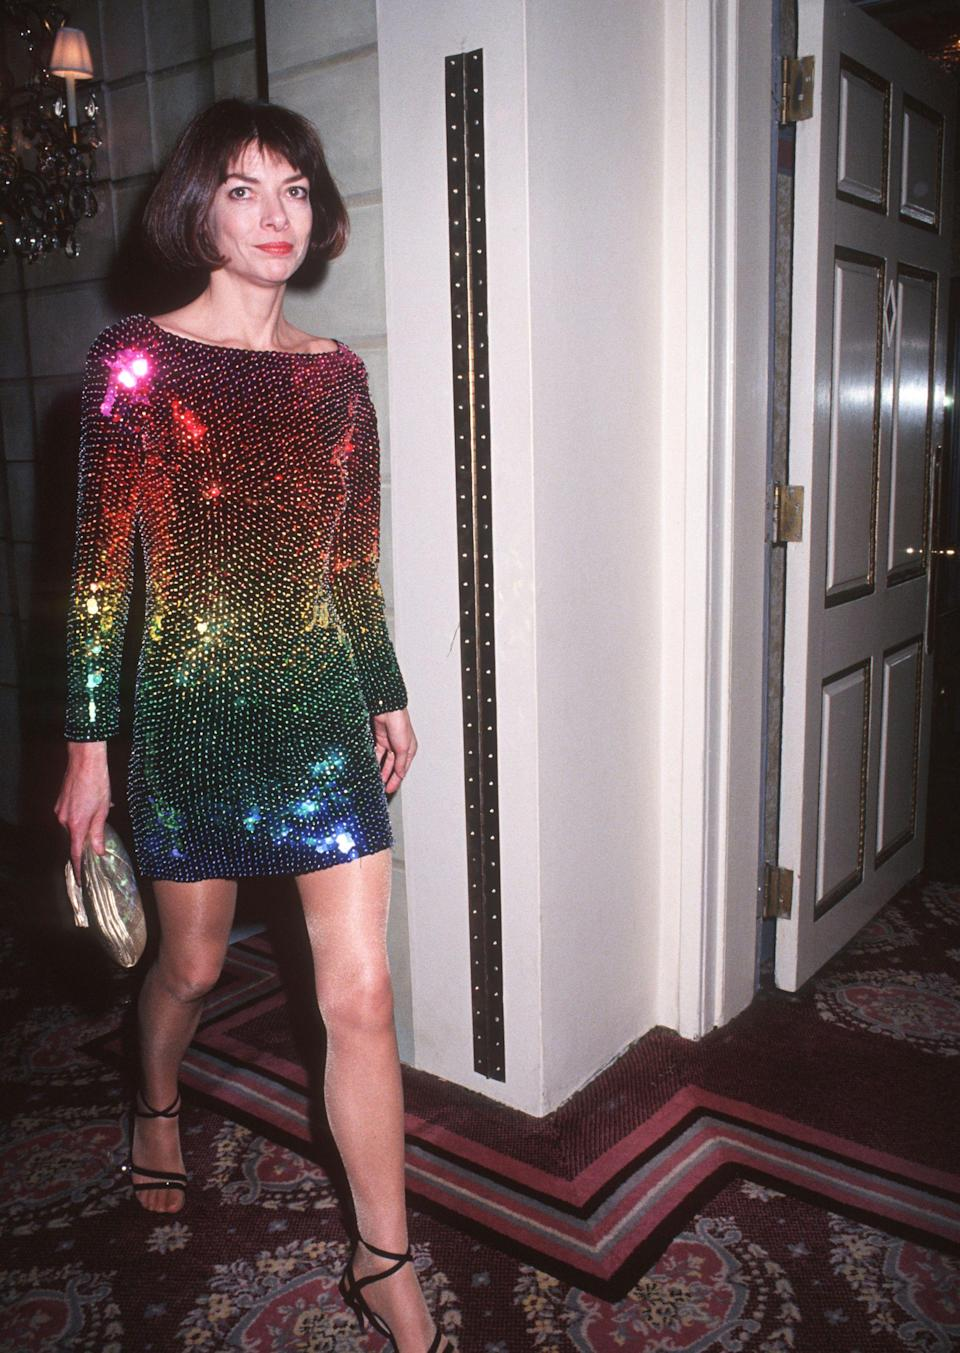 THEN: On an evening in 1990, Anna Wintour made a bold statement in a rainbow sequin party dress. Her love of shimmery sequins has been palpable throughout the years—a trend we saw all over the runways this S/S 18.